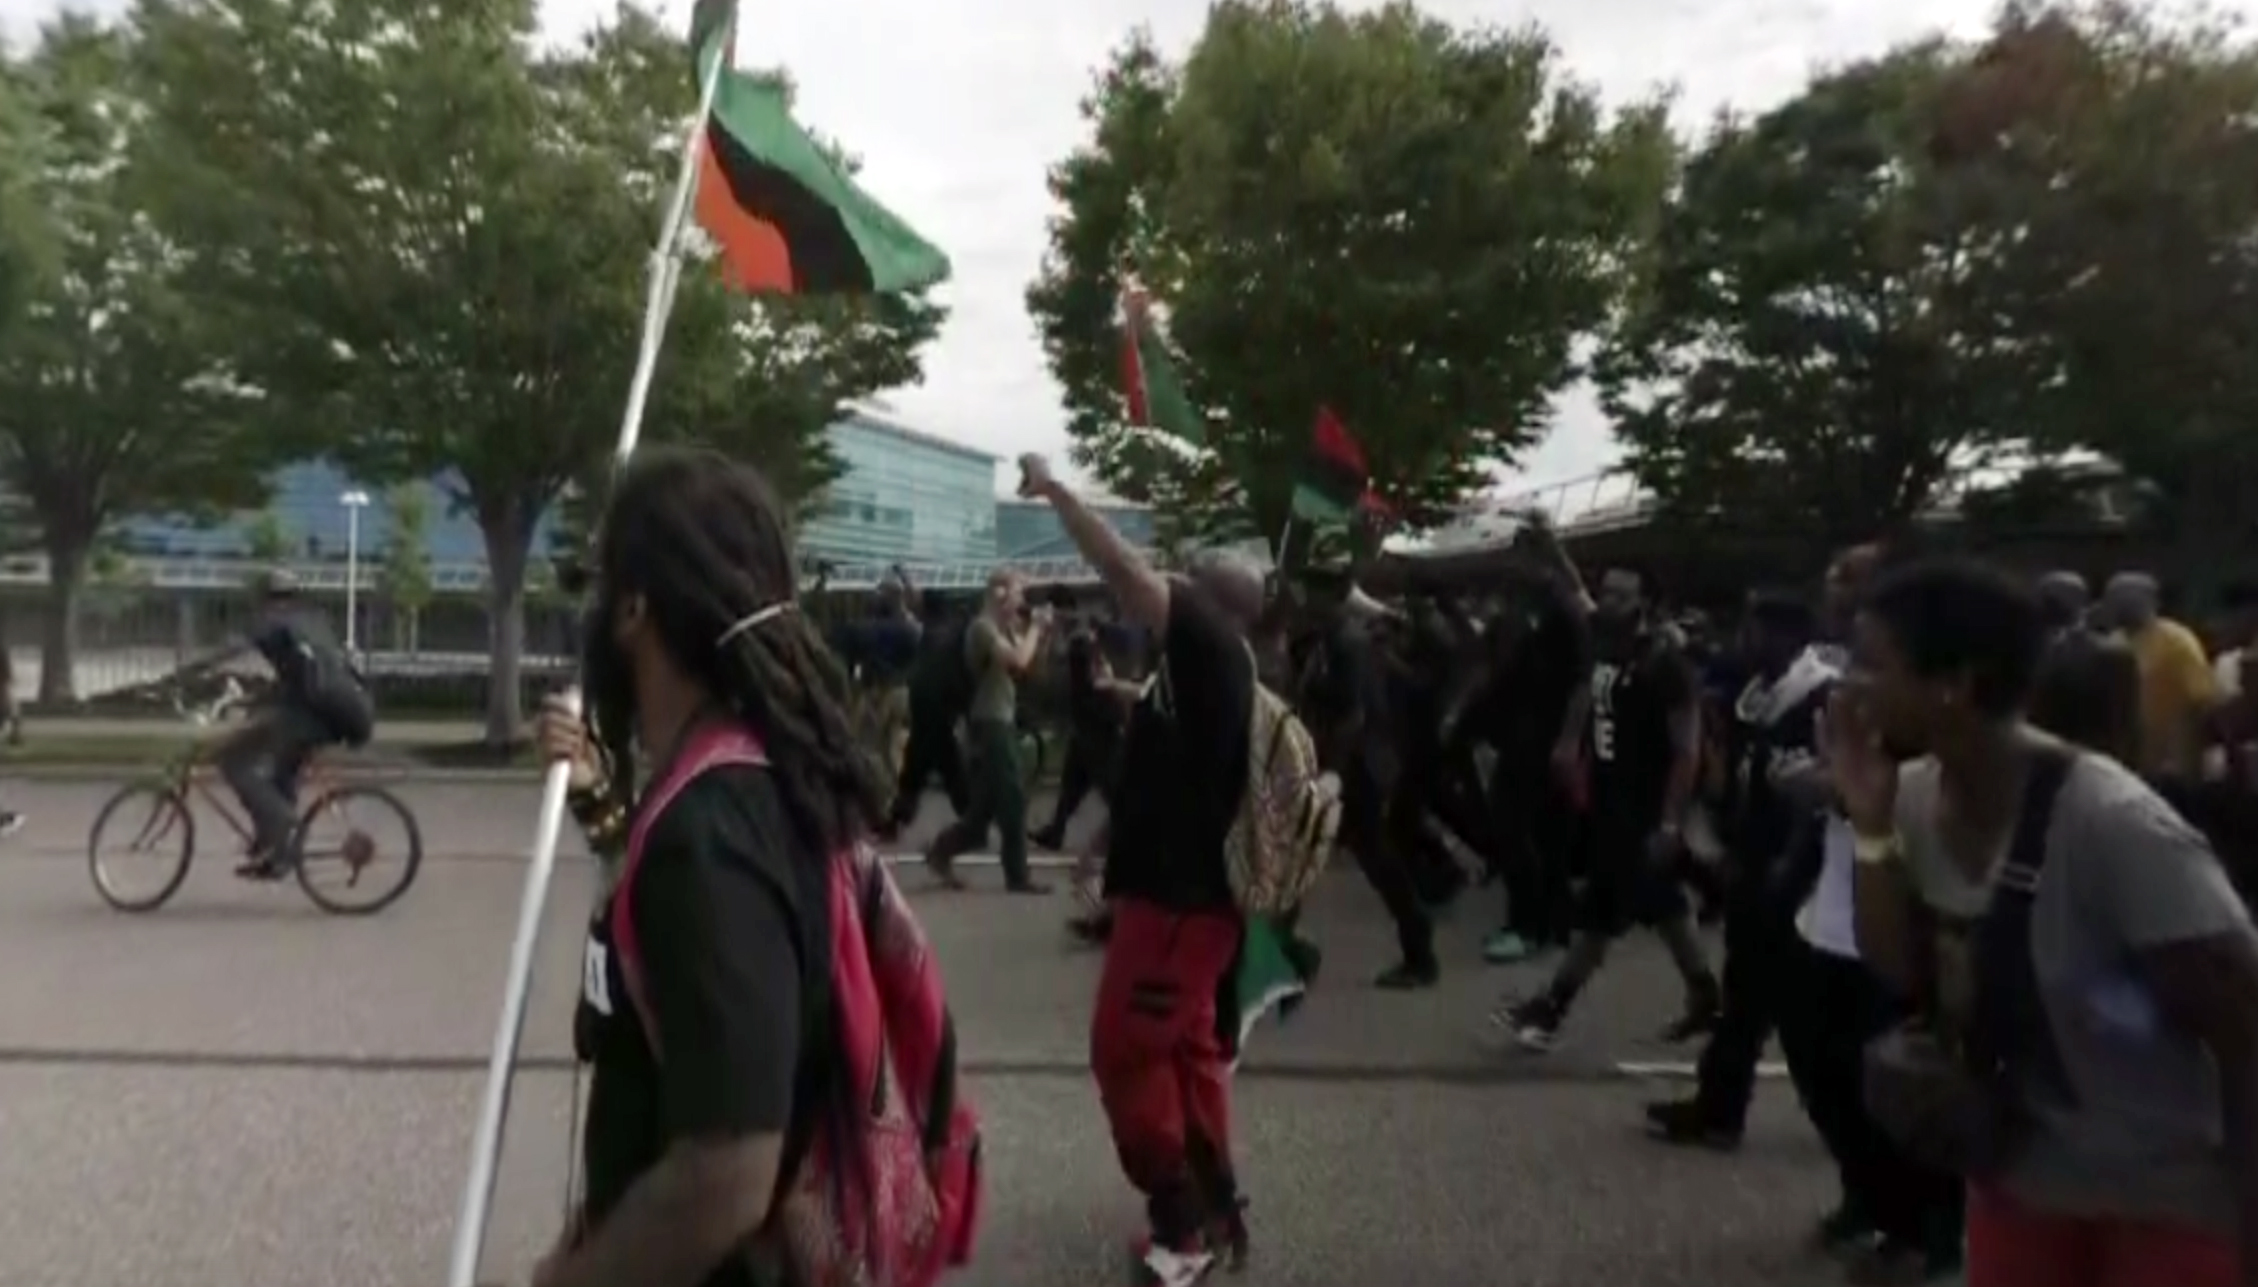 This still frame from 360 video shows a protest at the Republican National Convention in Cleveland.